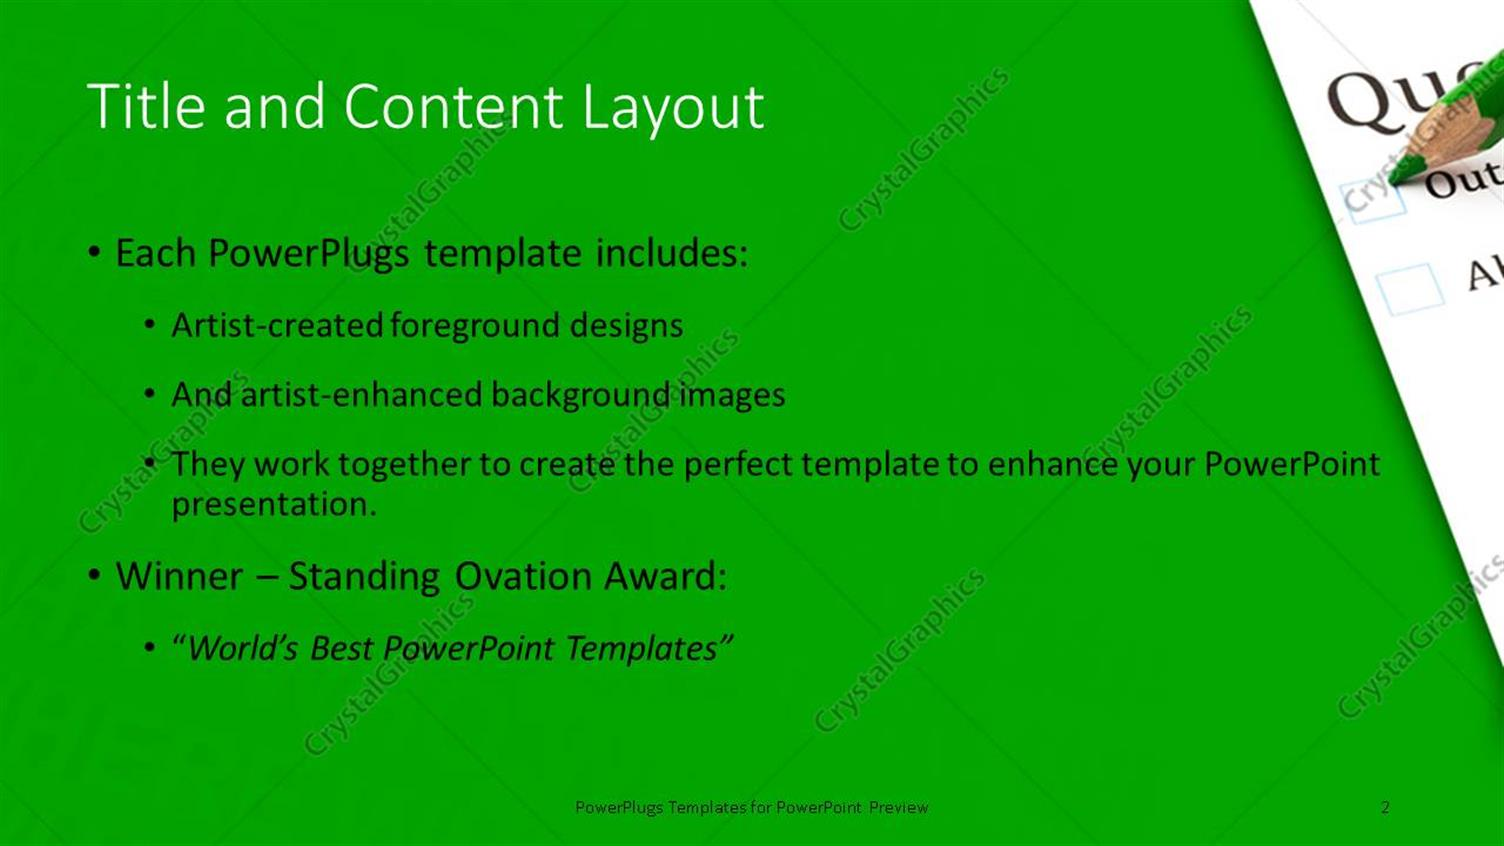 Utm powerpoint template quantumgaming eth zurich powerpoint template image collections powerpoint powerpoint templates toneelgroepblik Images